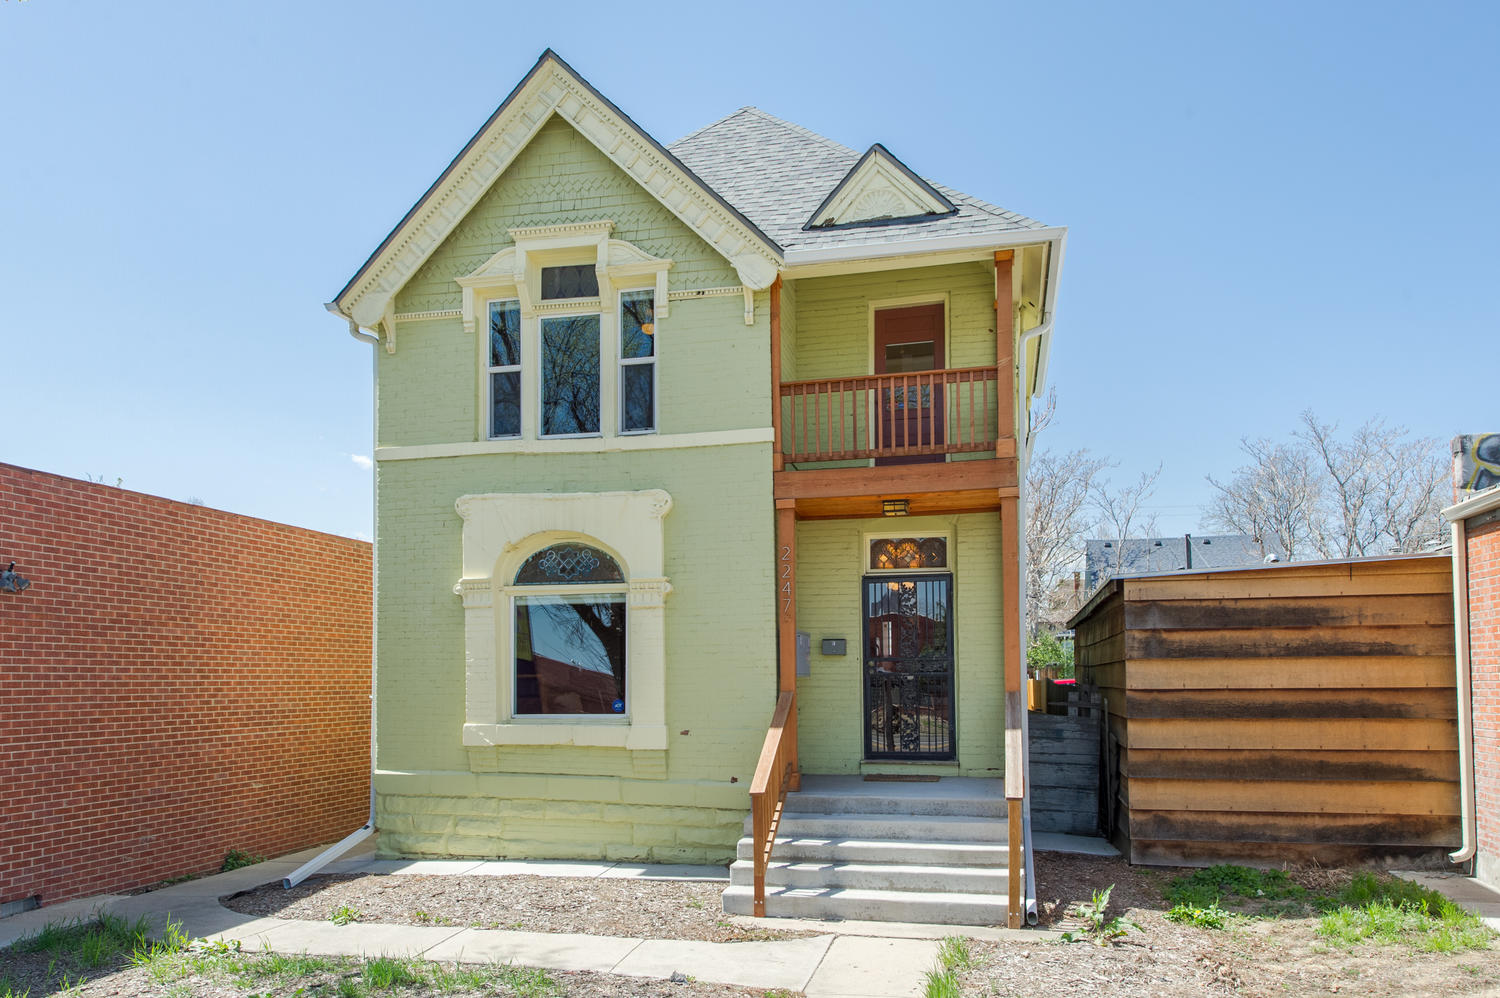 Single Family Home for Sale at 2247 Federal Boulevard Denver, Colorado, 80211 United States